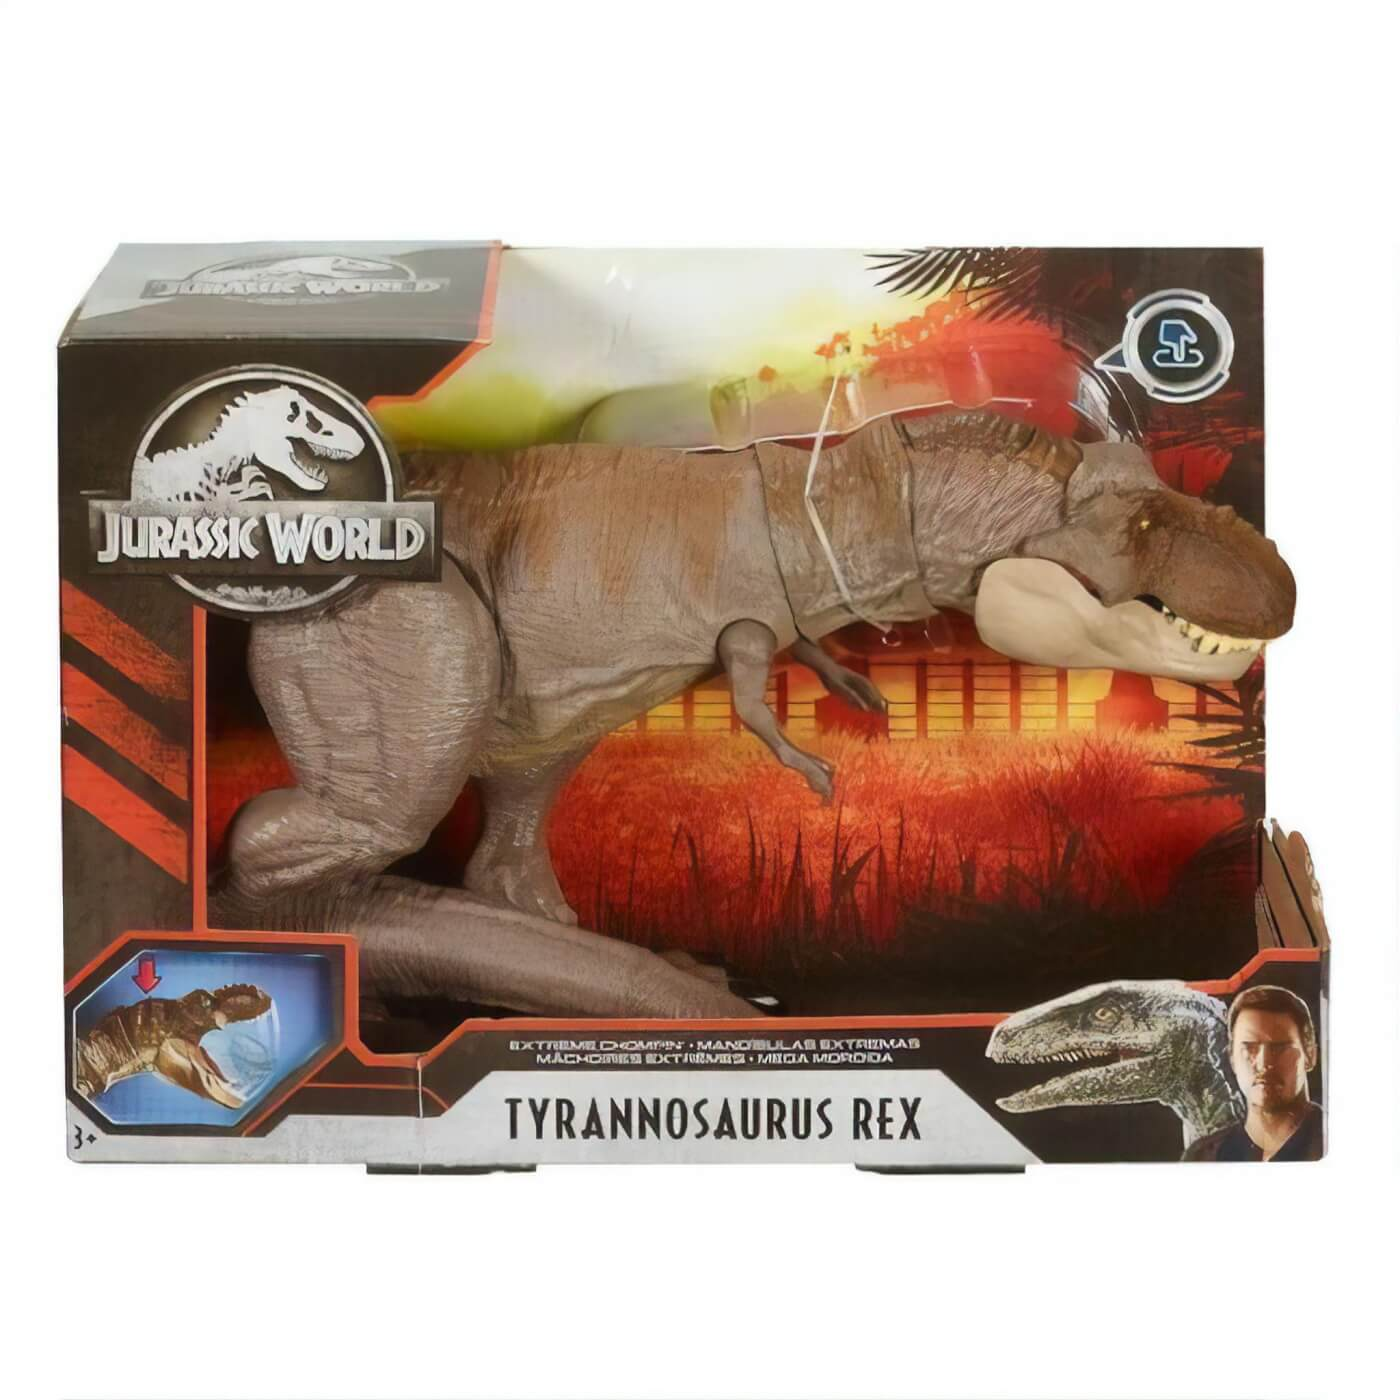 Upcoming Jurassic World Primal Attack Toys Now Available for Pre-Order at Entertainment Earth!